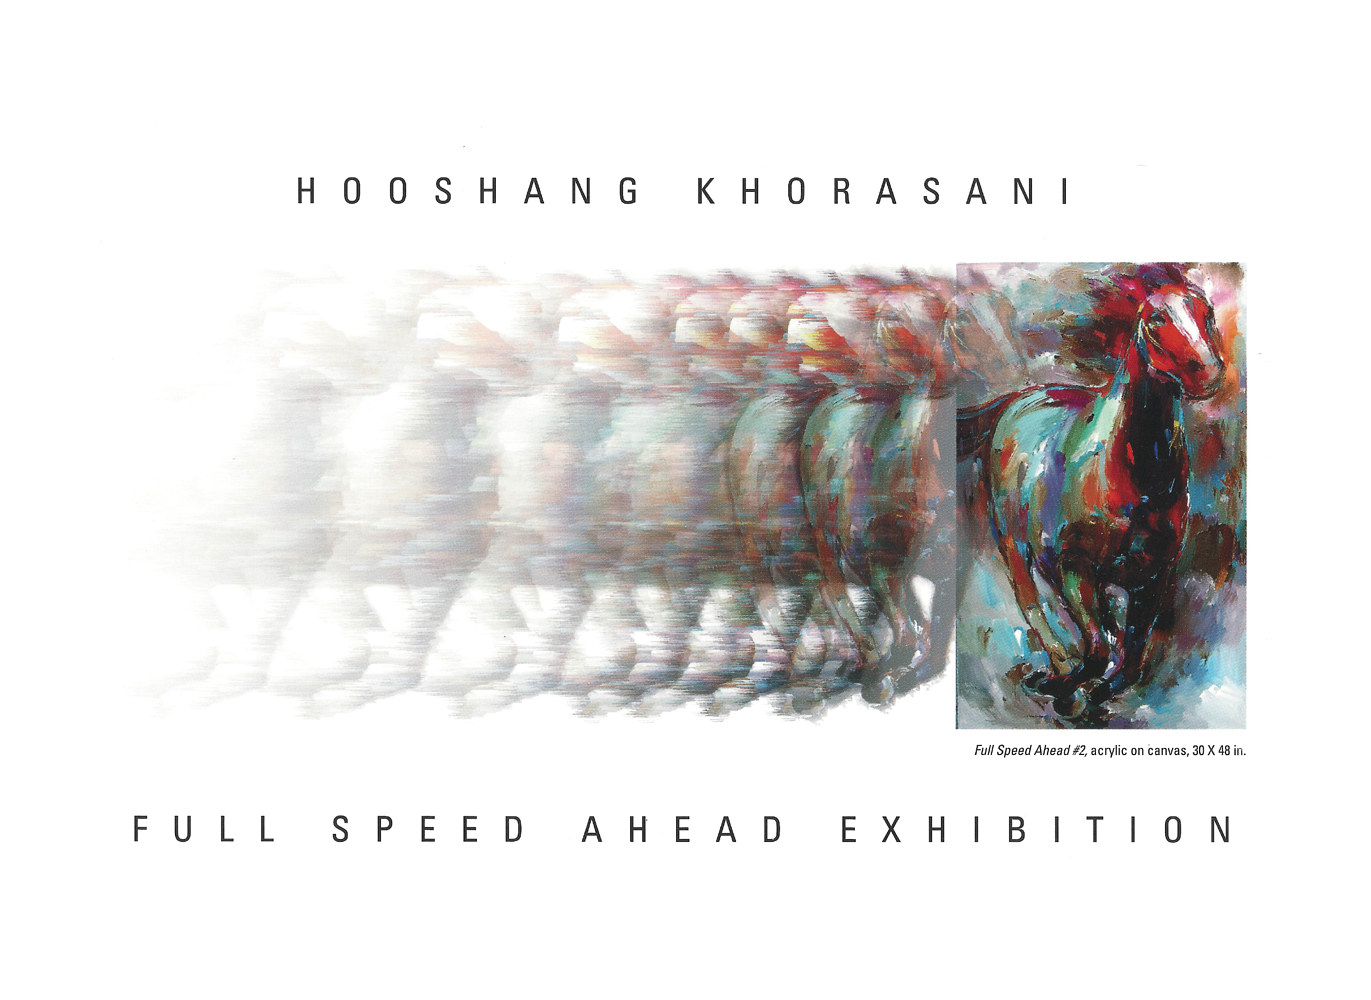 Full Speed Ahead postcard, Church Street Gallery - Texas by Hooshang Khorasani